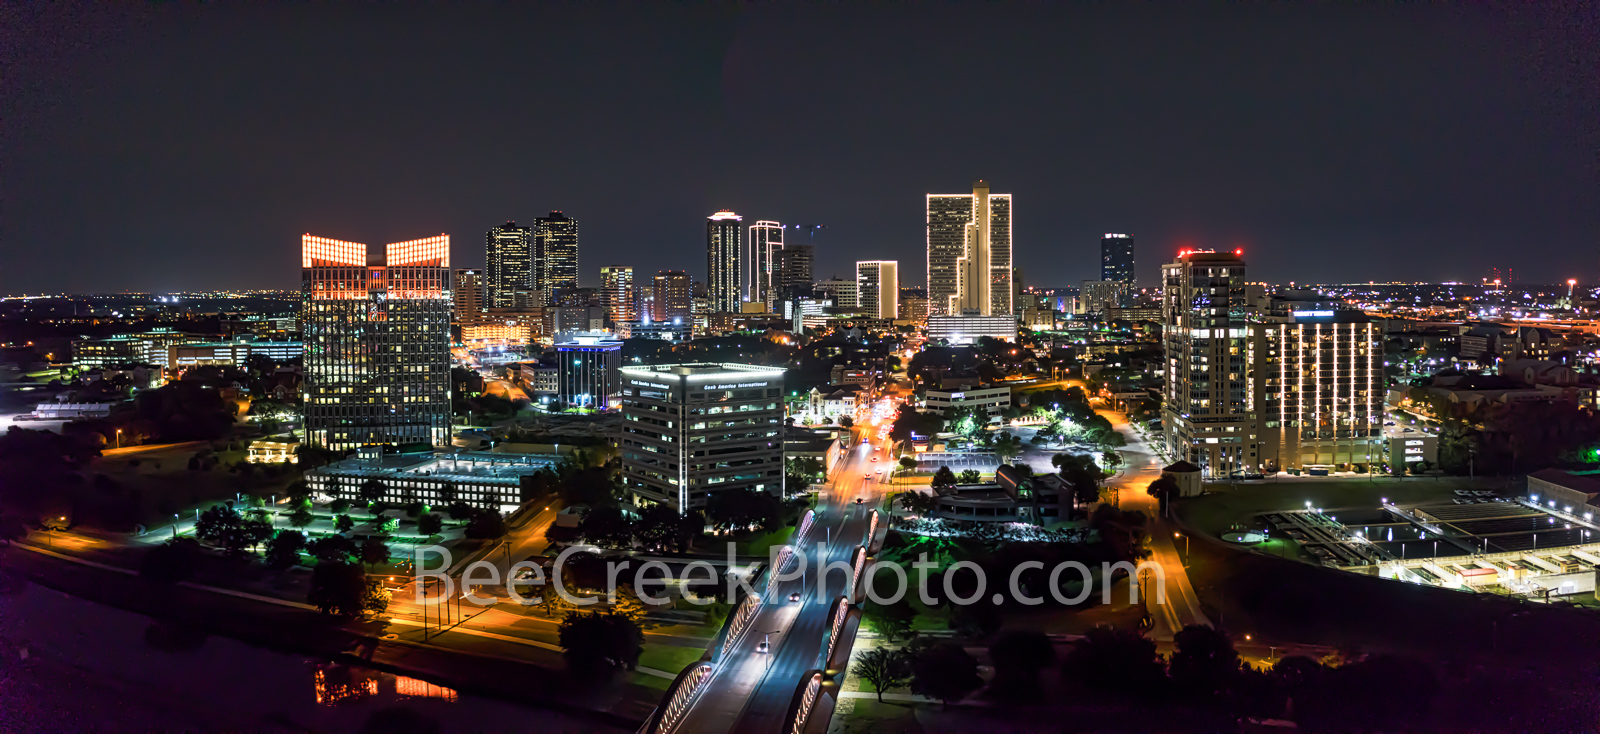 Fort Worth, Ft Worth, skyline, skylines, cityscape, cityscapes, downtown, night, seventh street bridge, 7th street, Trinity river, panorama, pano, Tarrant county, DFW Metro, downtown fort worth night,, photo